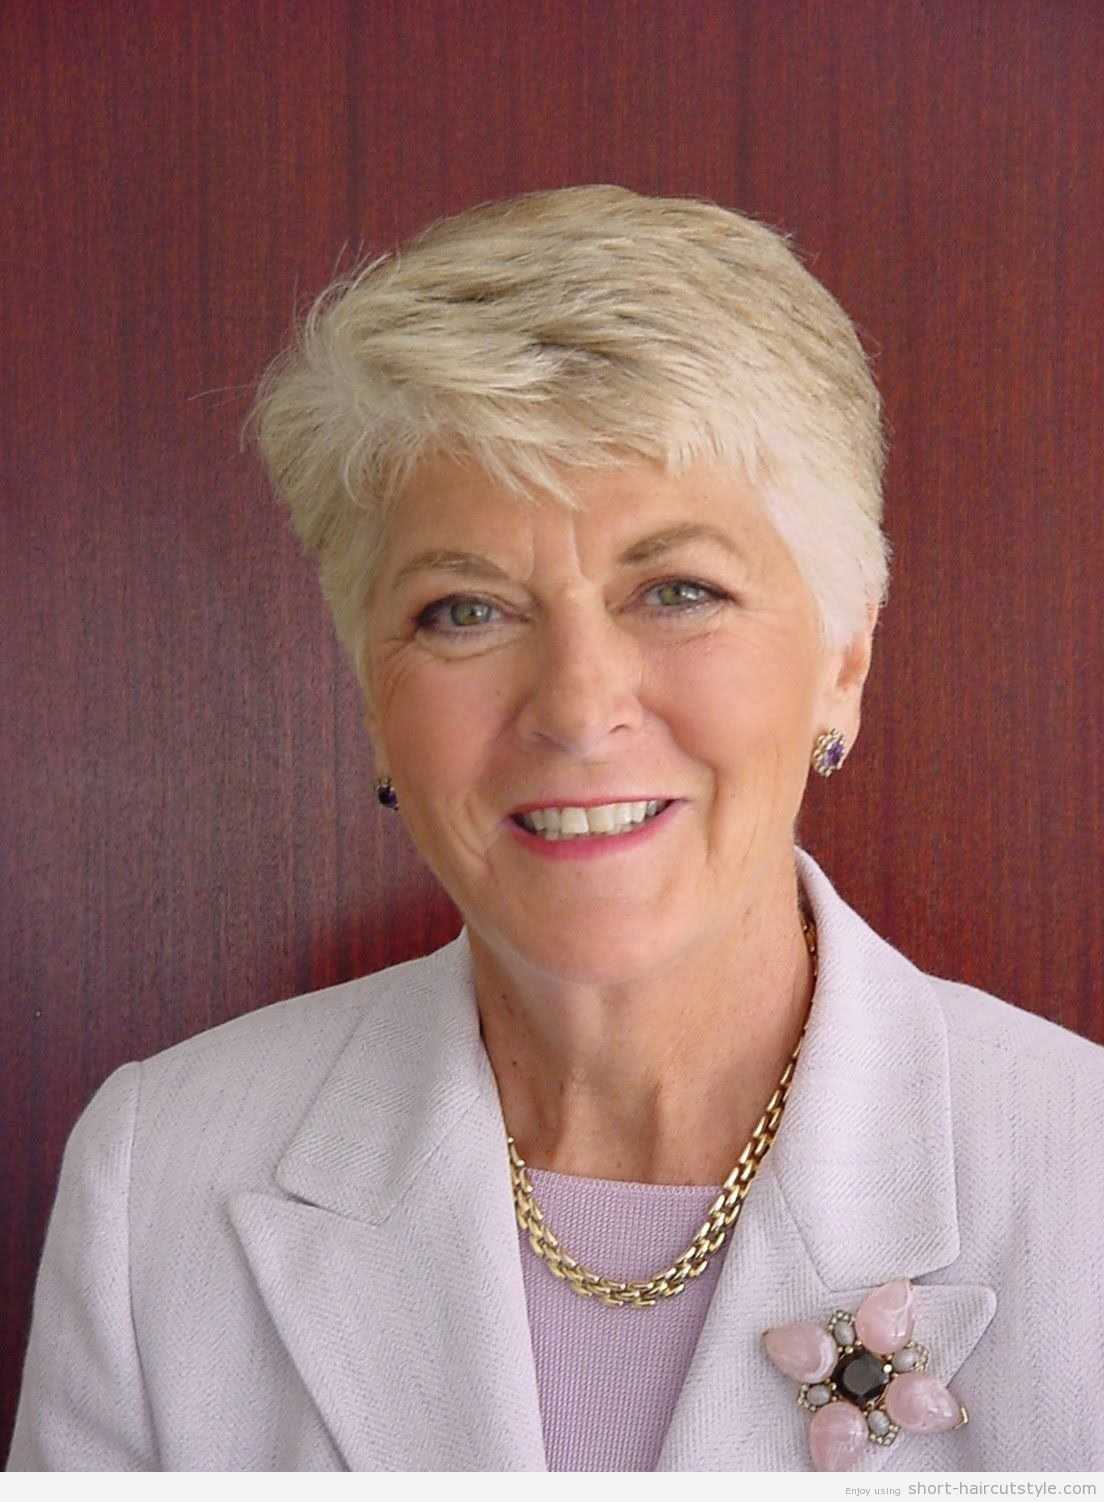 short haircuts for women over 60 70 - Shorthairstyleslong.com ...